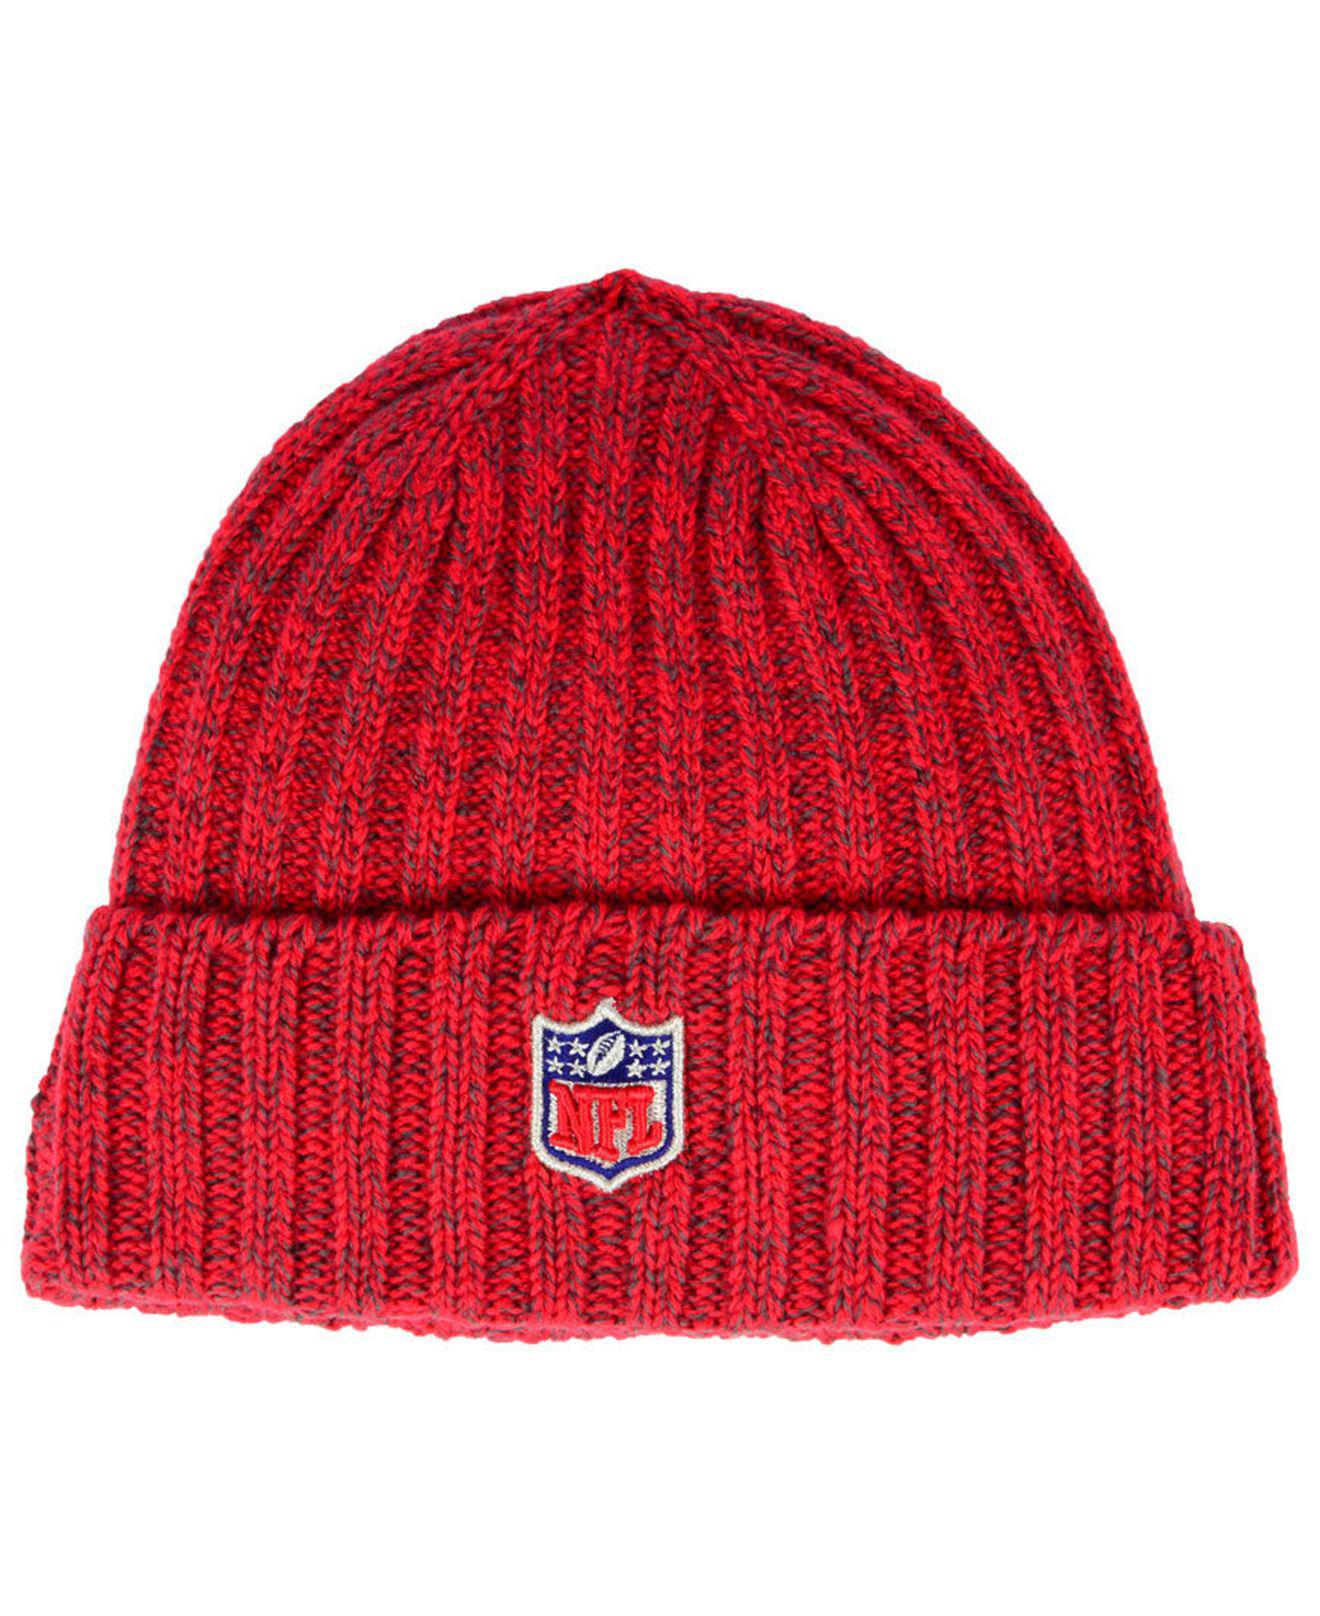 on sale 67393 d515b Lyst - KTZ Tampa Bay Buccaneers On Field Knit Hat in Red